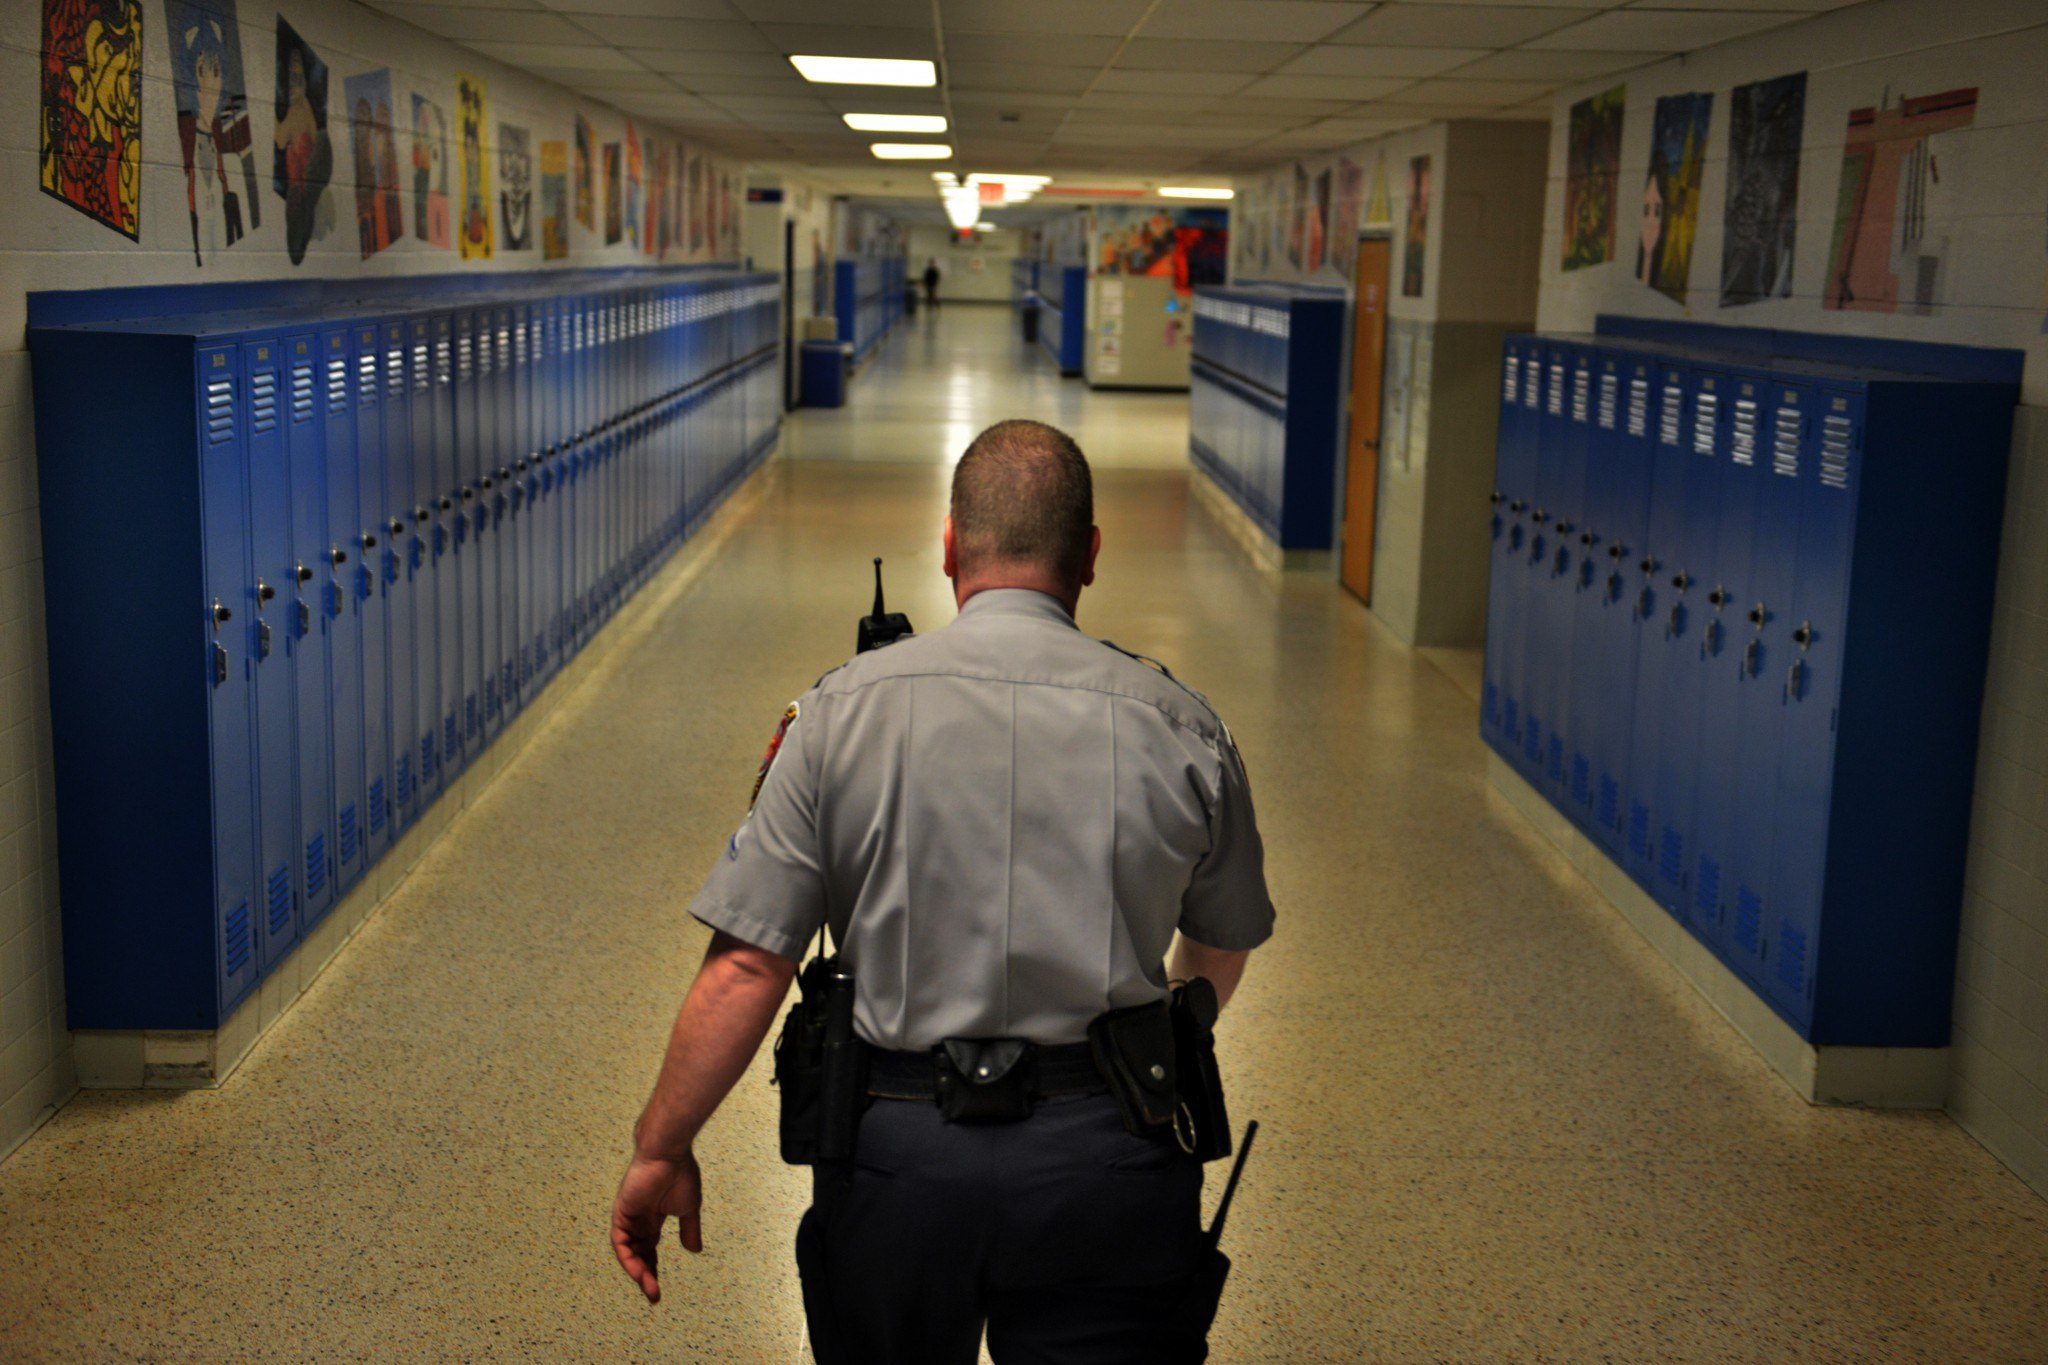 PROACTIVE This North Carolina County Has Decided To Hire Armed Security Guards For Every Public School